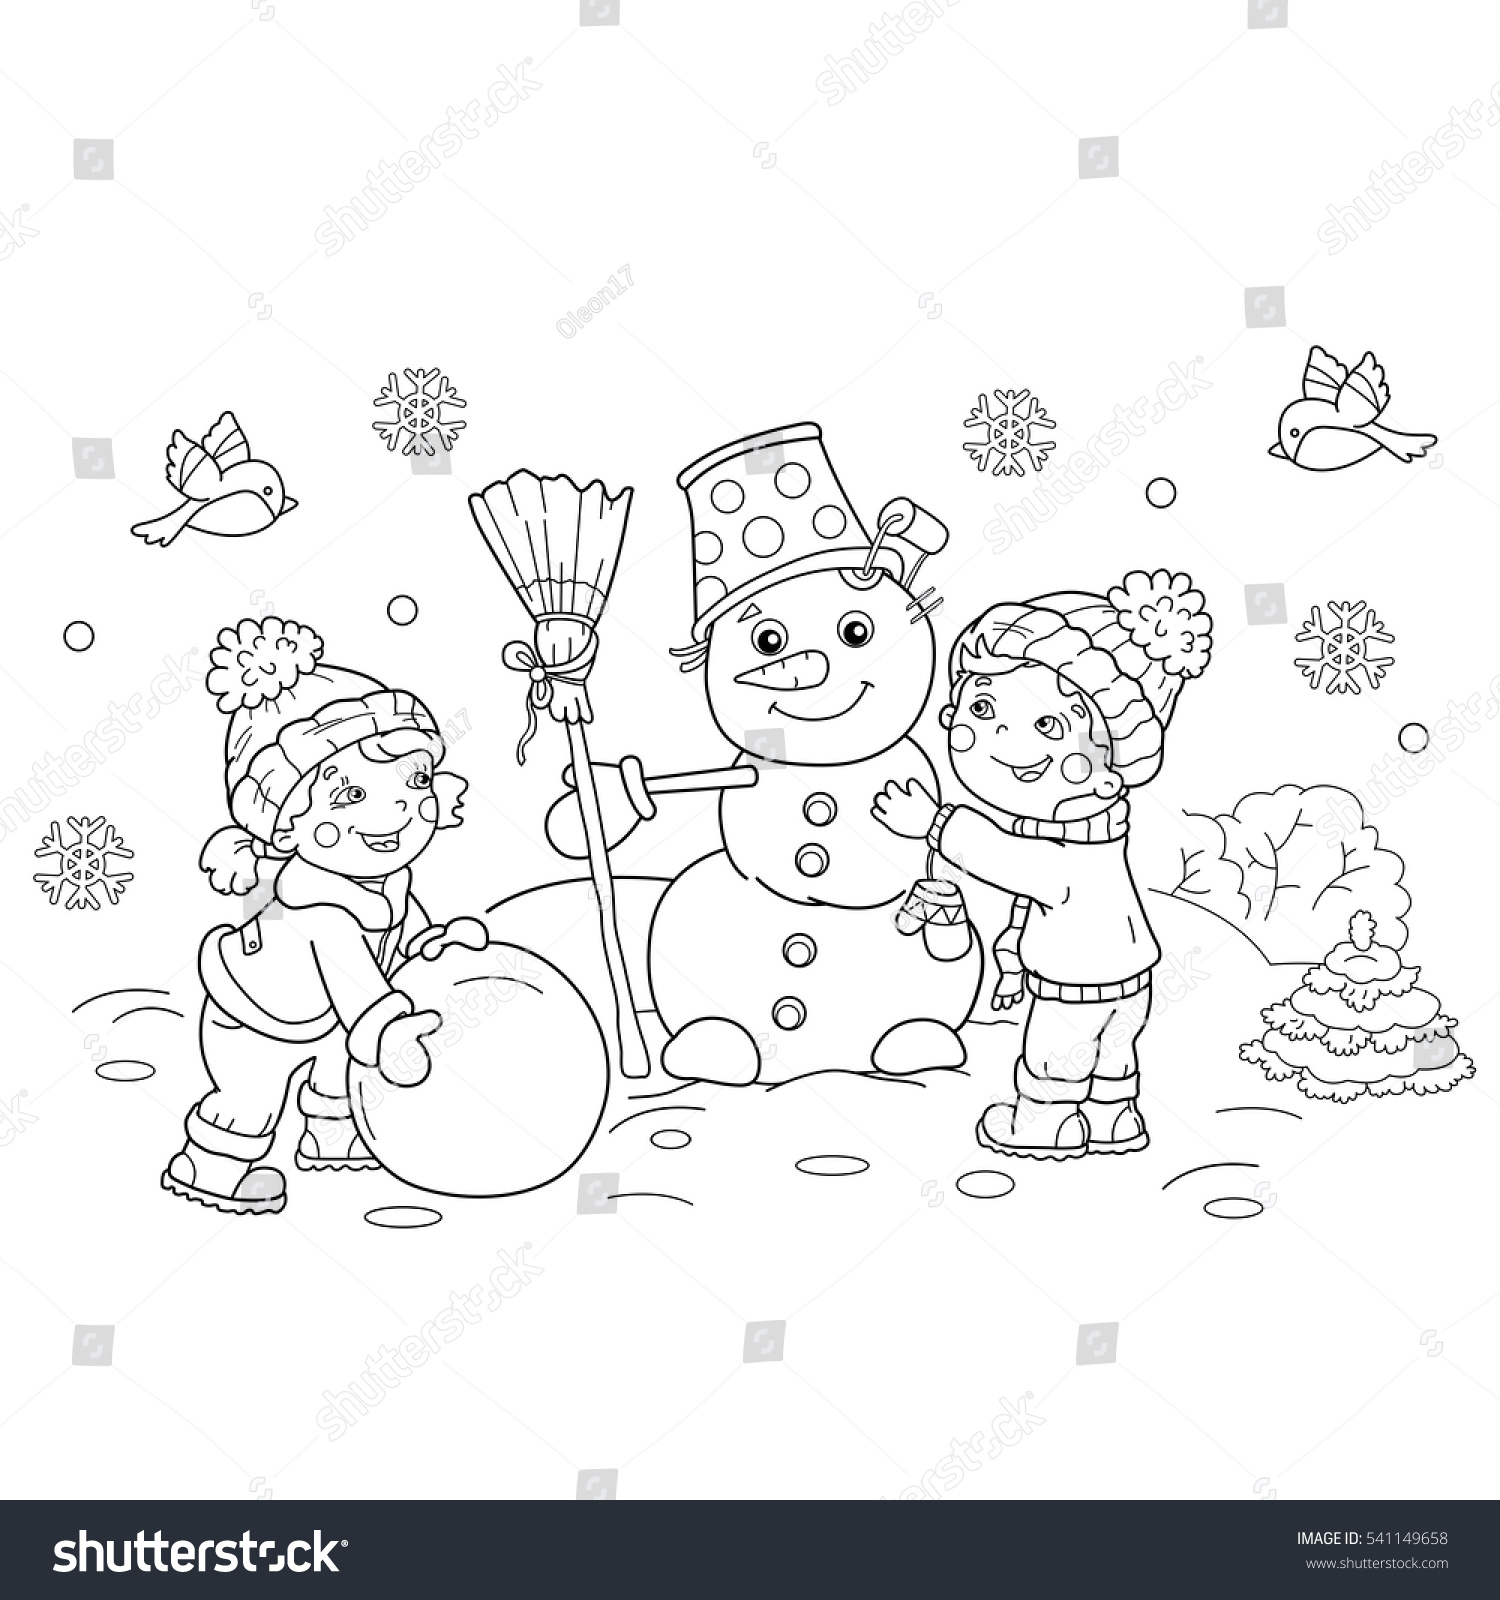 Coloring book for girl - Coloring Page Outline Of Cartoon Boy With Girl Making Snowman Together Winter Coloring Book